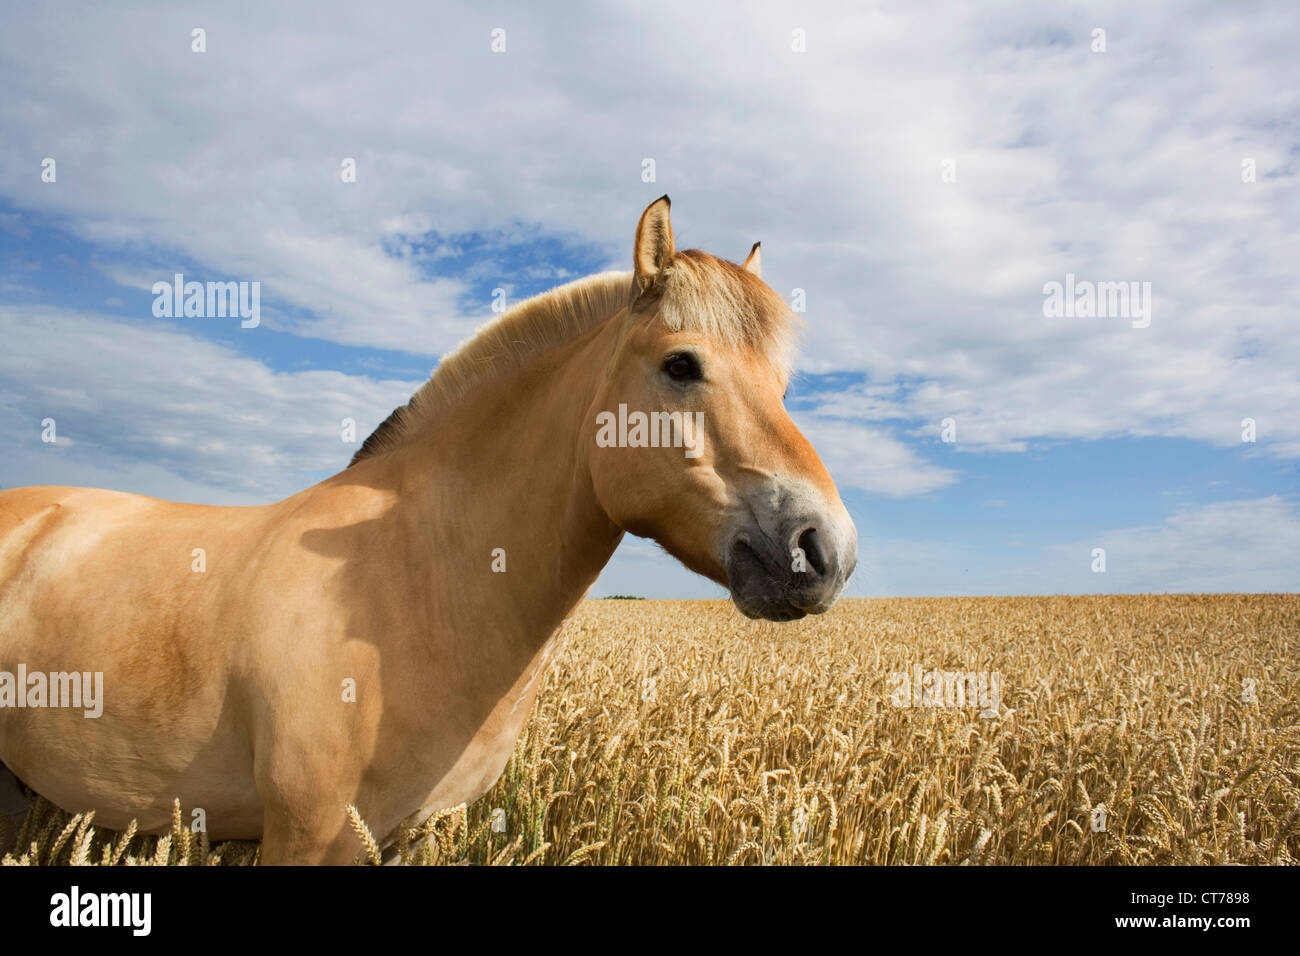 broewn horse in front of field - Stock Image